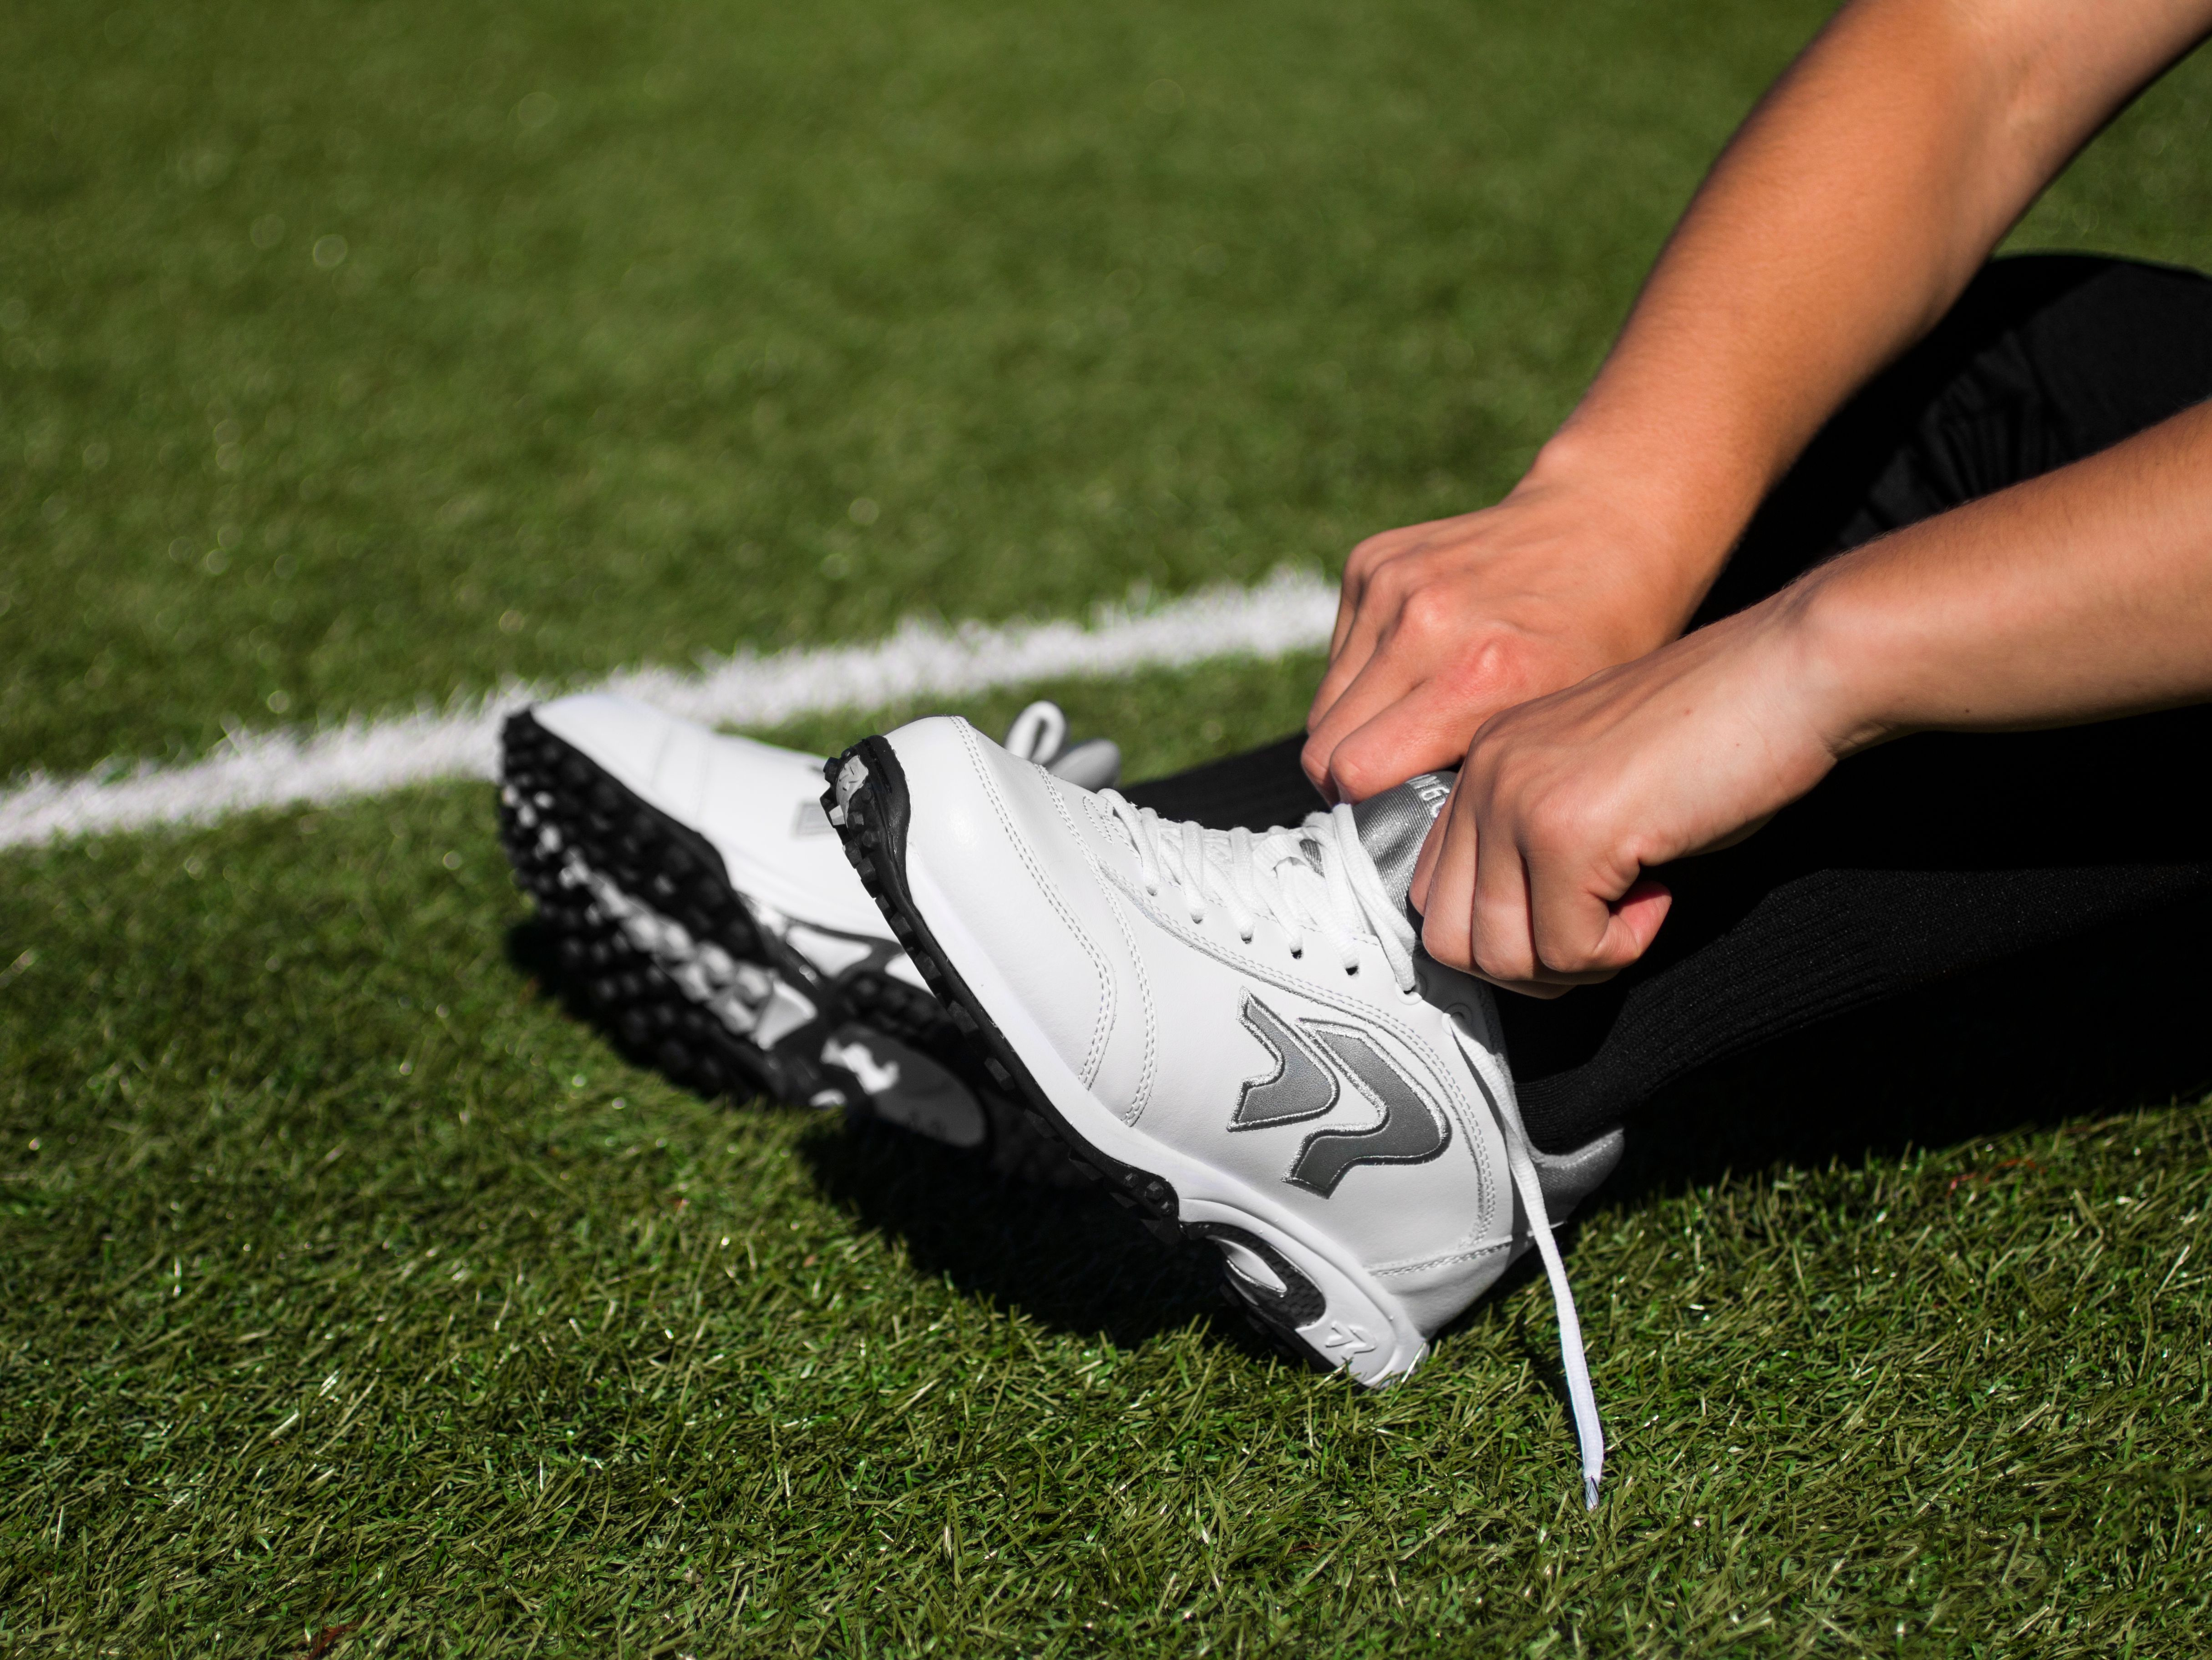 c029b6c46 --EARLY ACCESS-- Pre-order your White Turf shoes today!  Orders will ship  end of November  softballstrong  ringor  ringorsb  softball